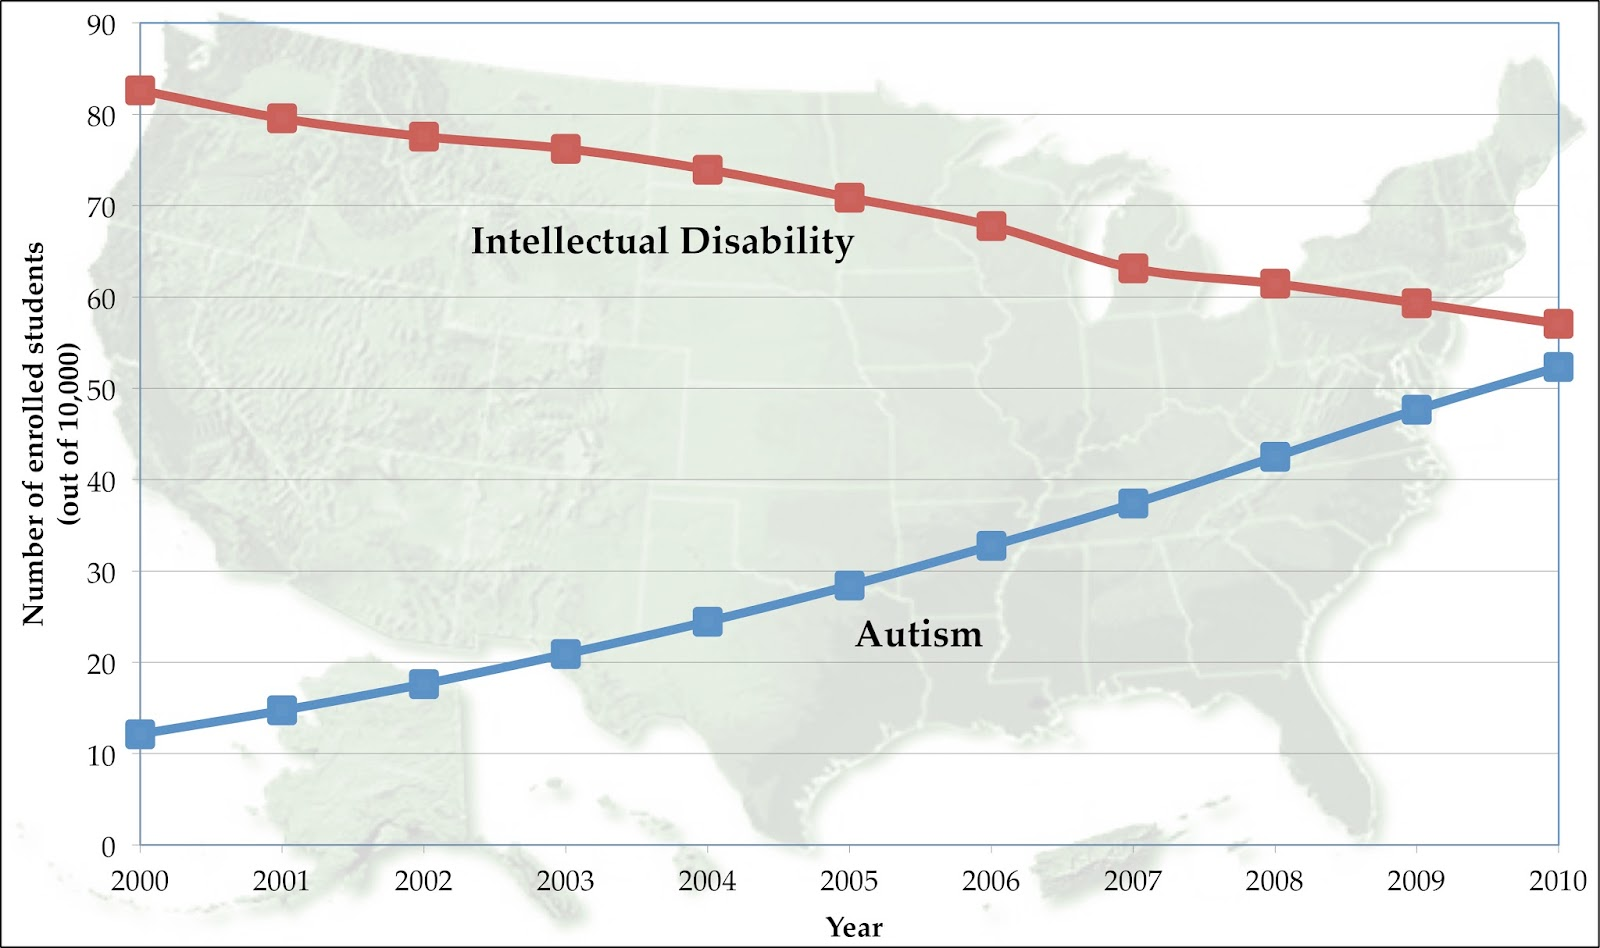 Autism rates on the rise with autism blue and intellectual disability red in special education programs in the united states from 2000 to 2010 the increase in autism freerunsca Choice Image